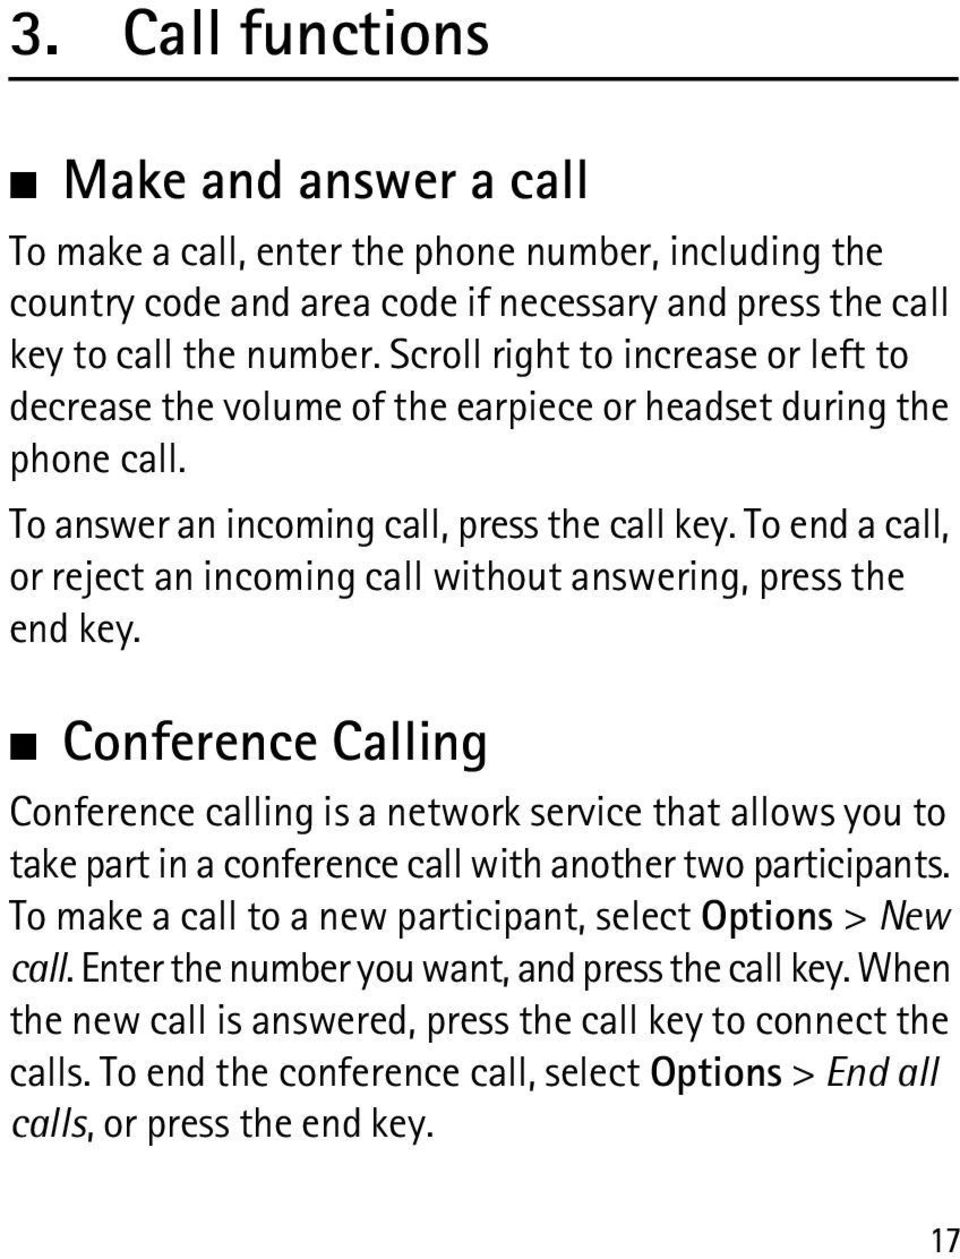 To end a call, or reject an incoming call without answering, press the end key.